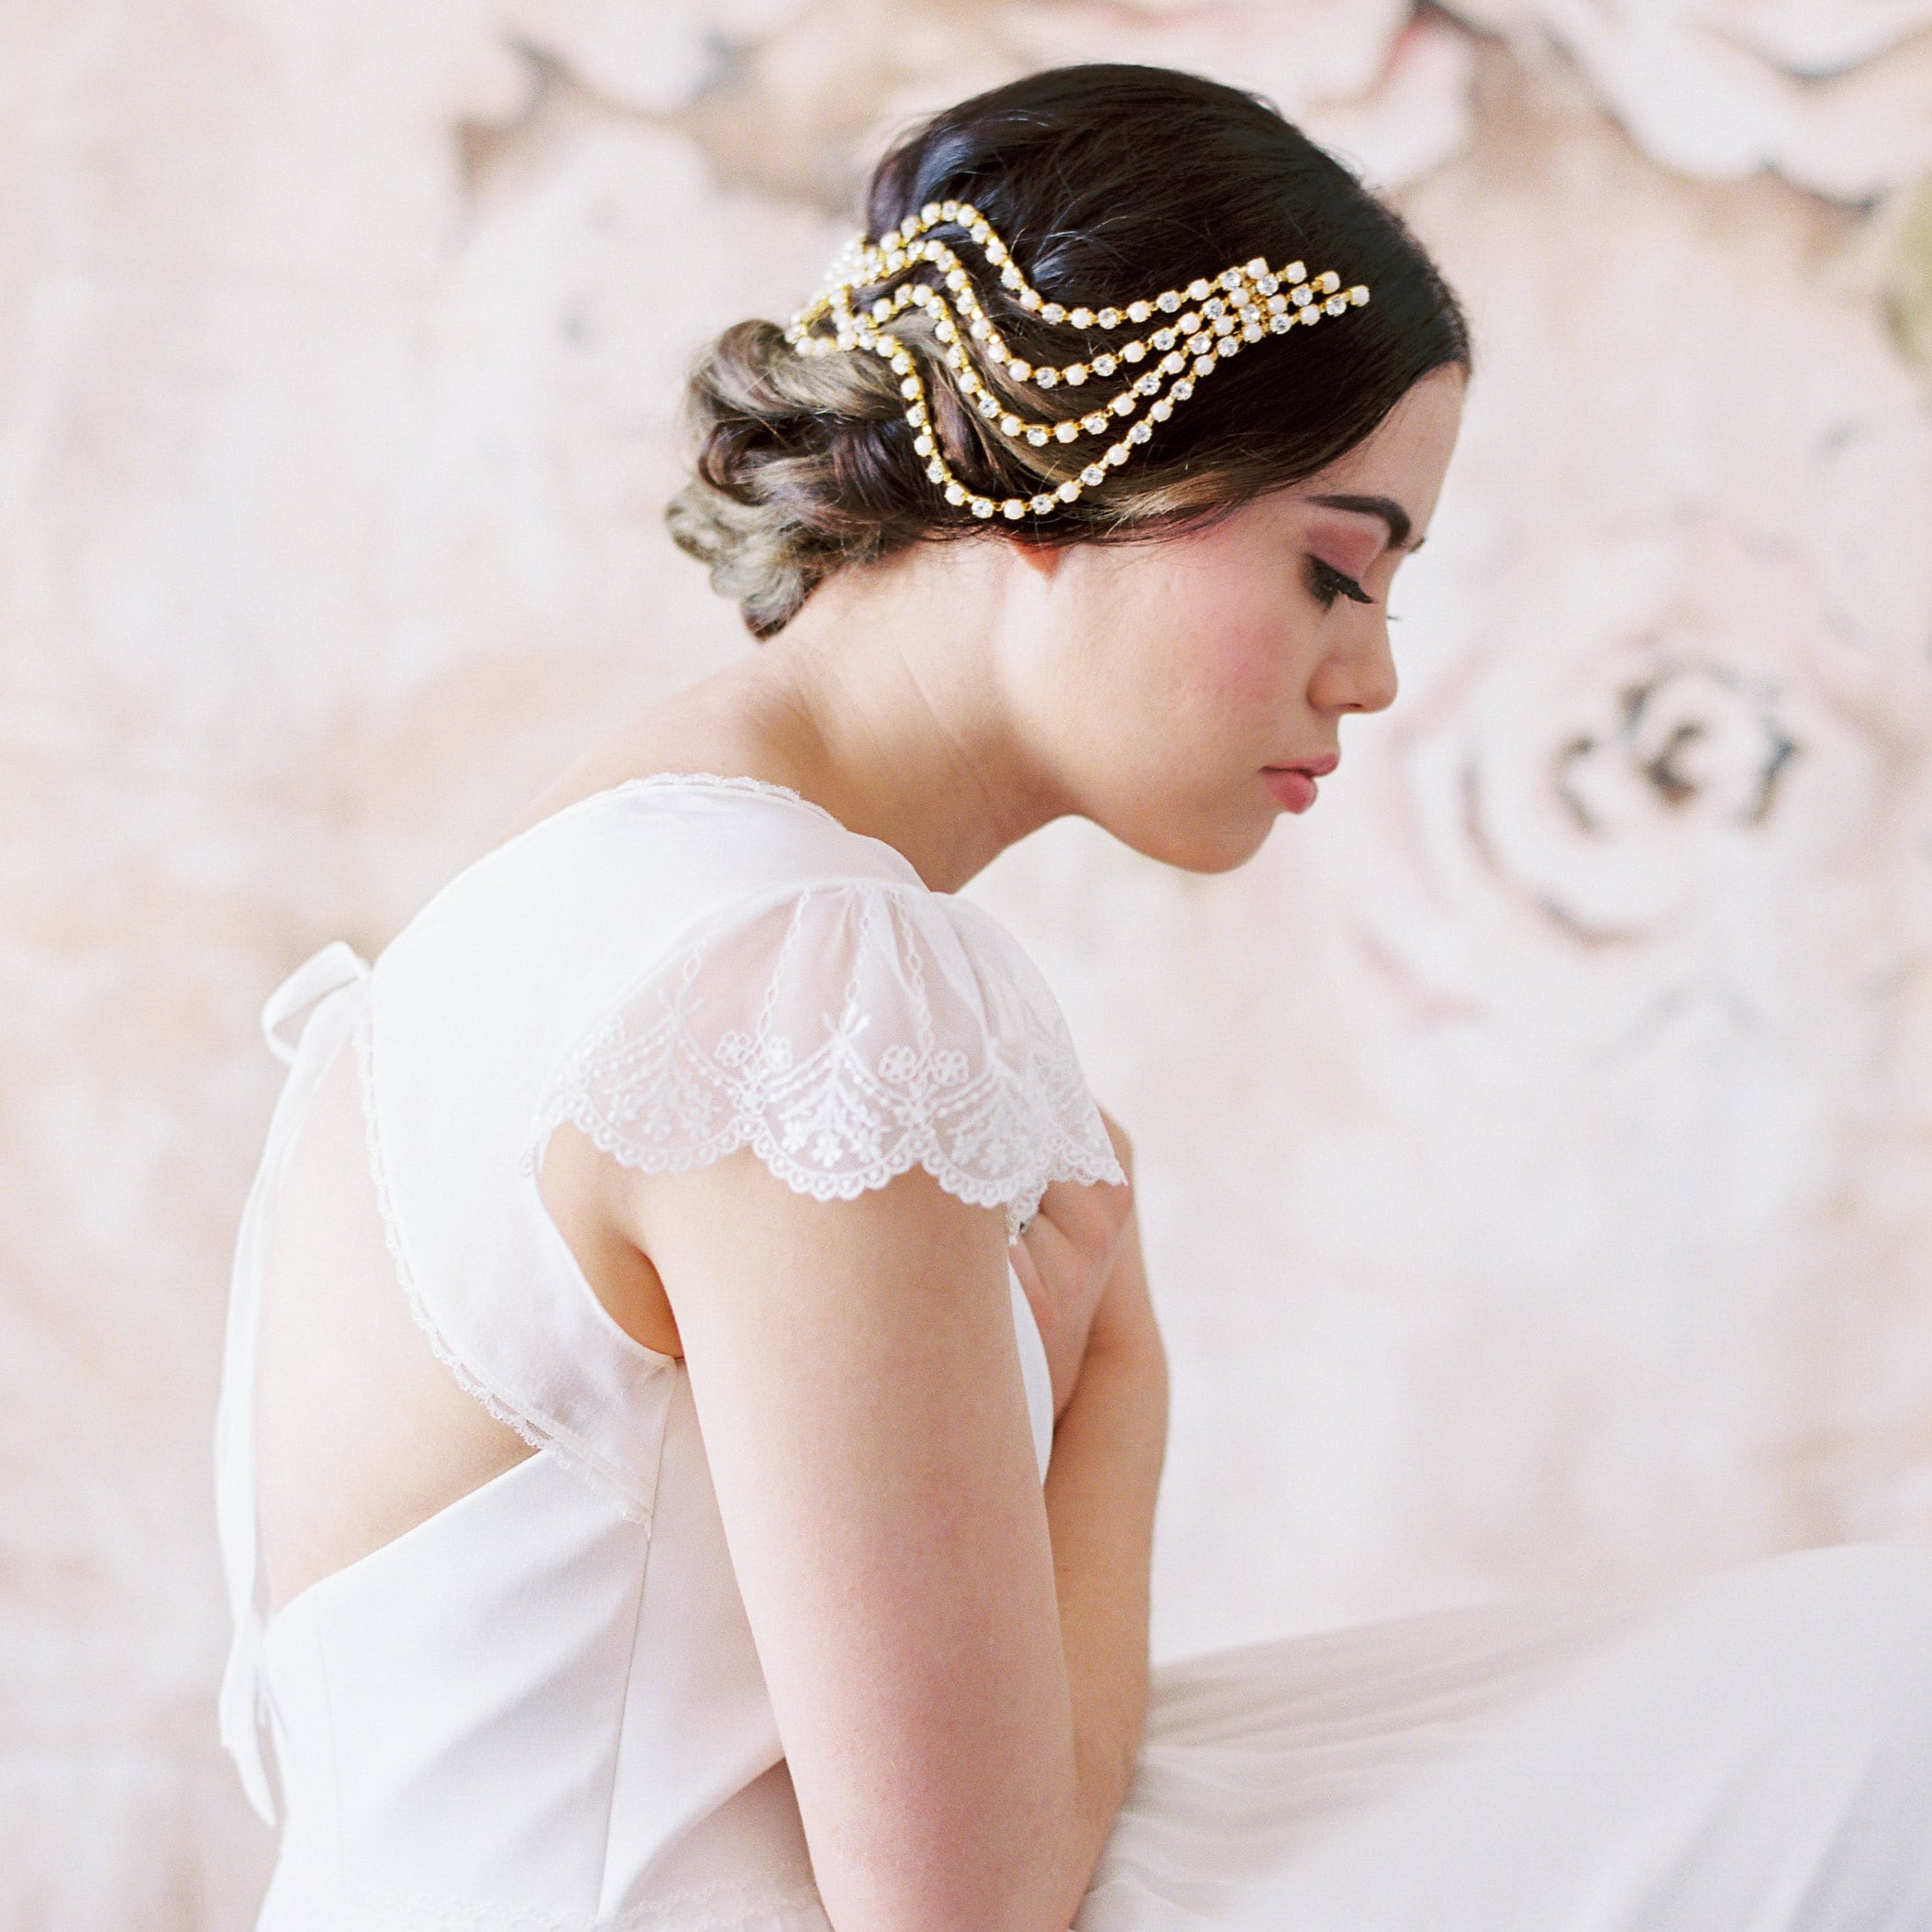 Danani Bridal headpieces veils and hair jewelry by danani on Etsy